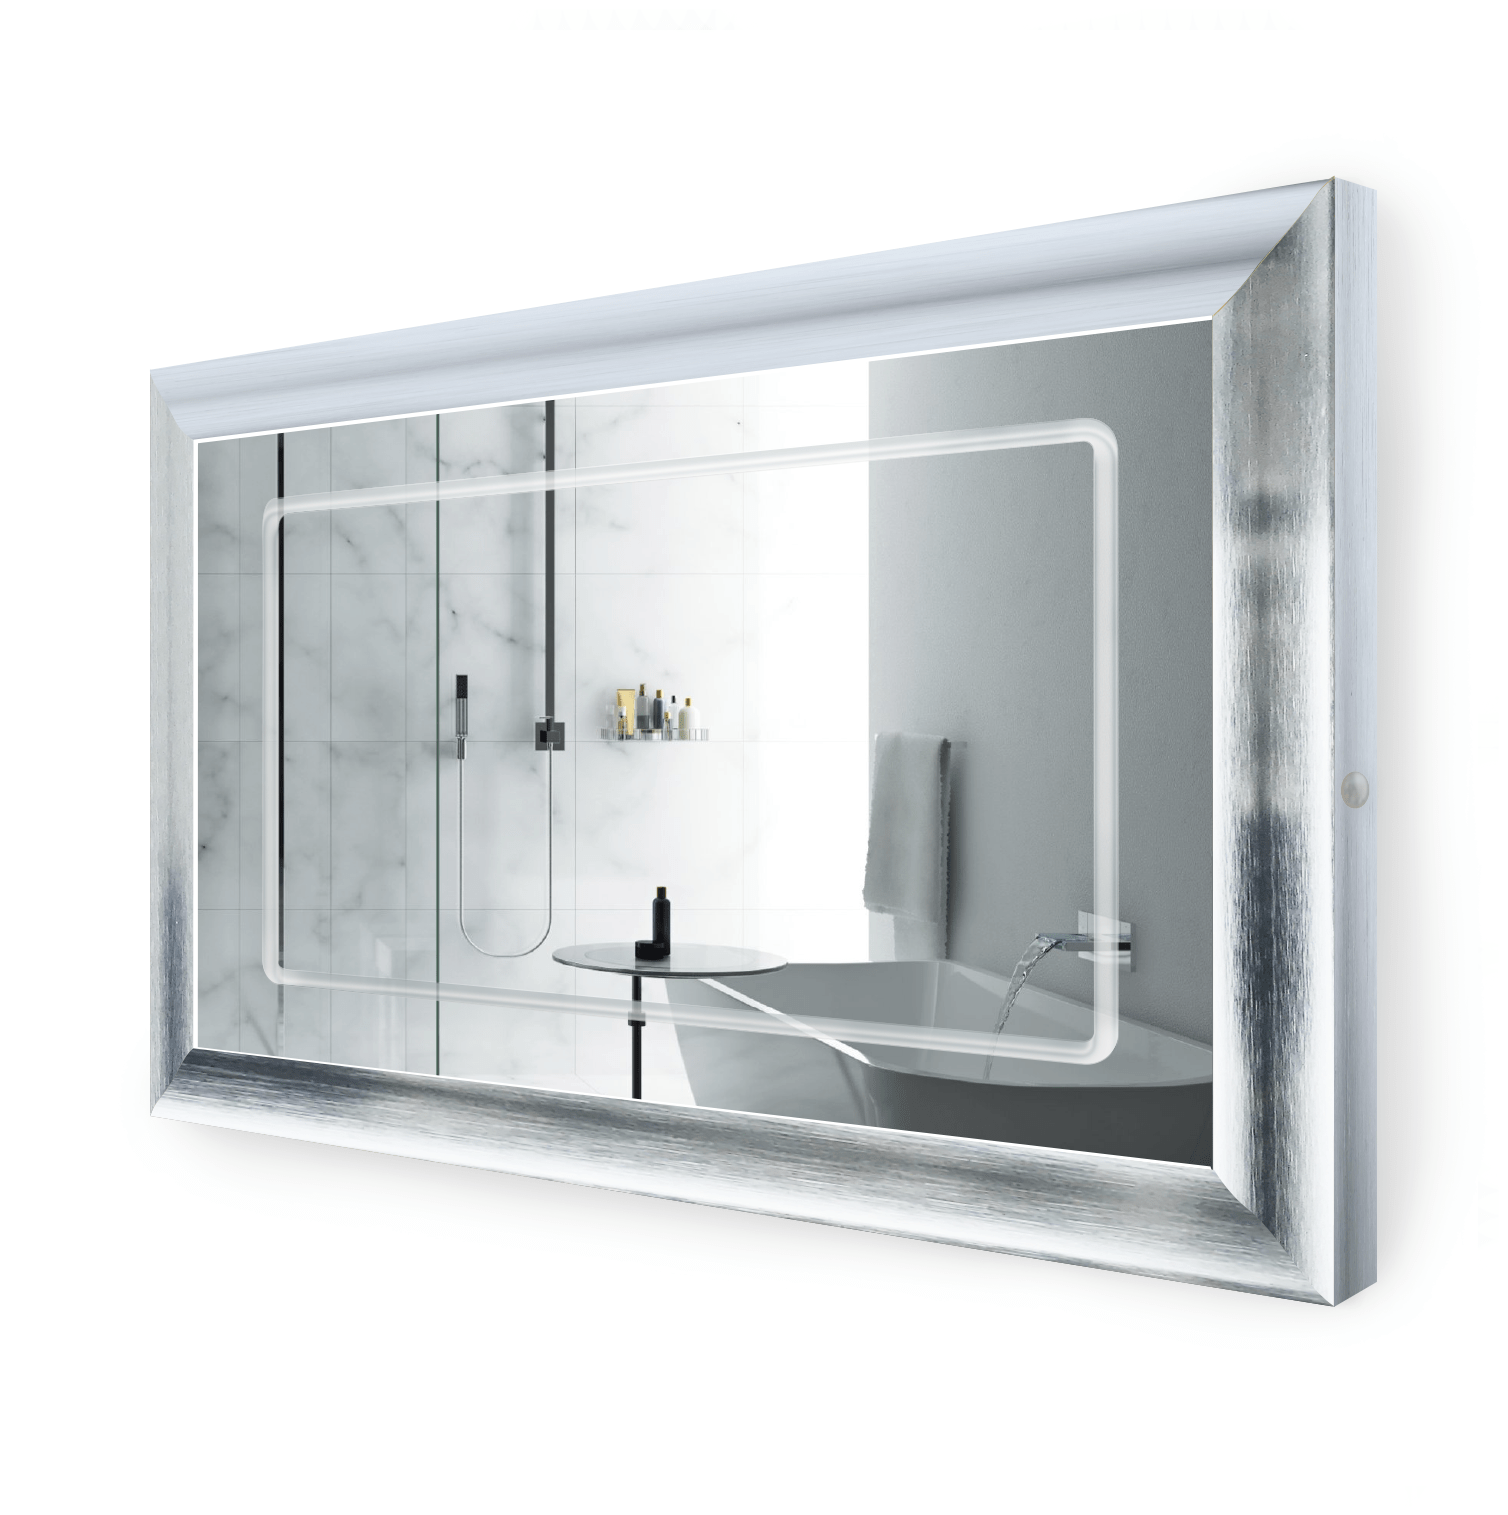 LED Lighted 48 Inch x 30 Inch Bathroom Silver Frame Mirror